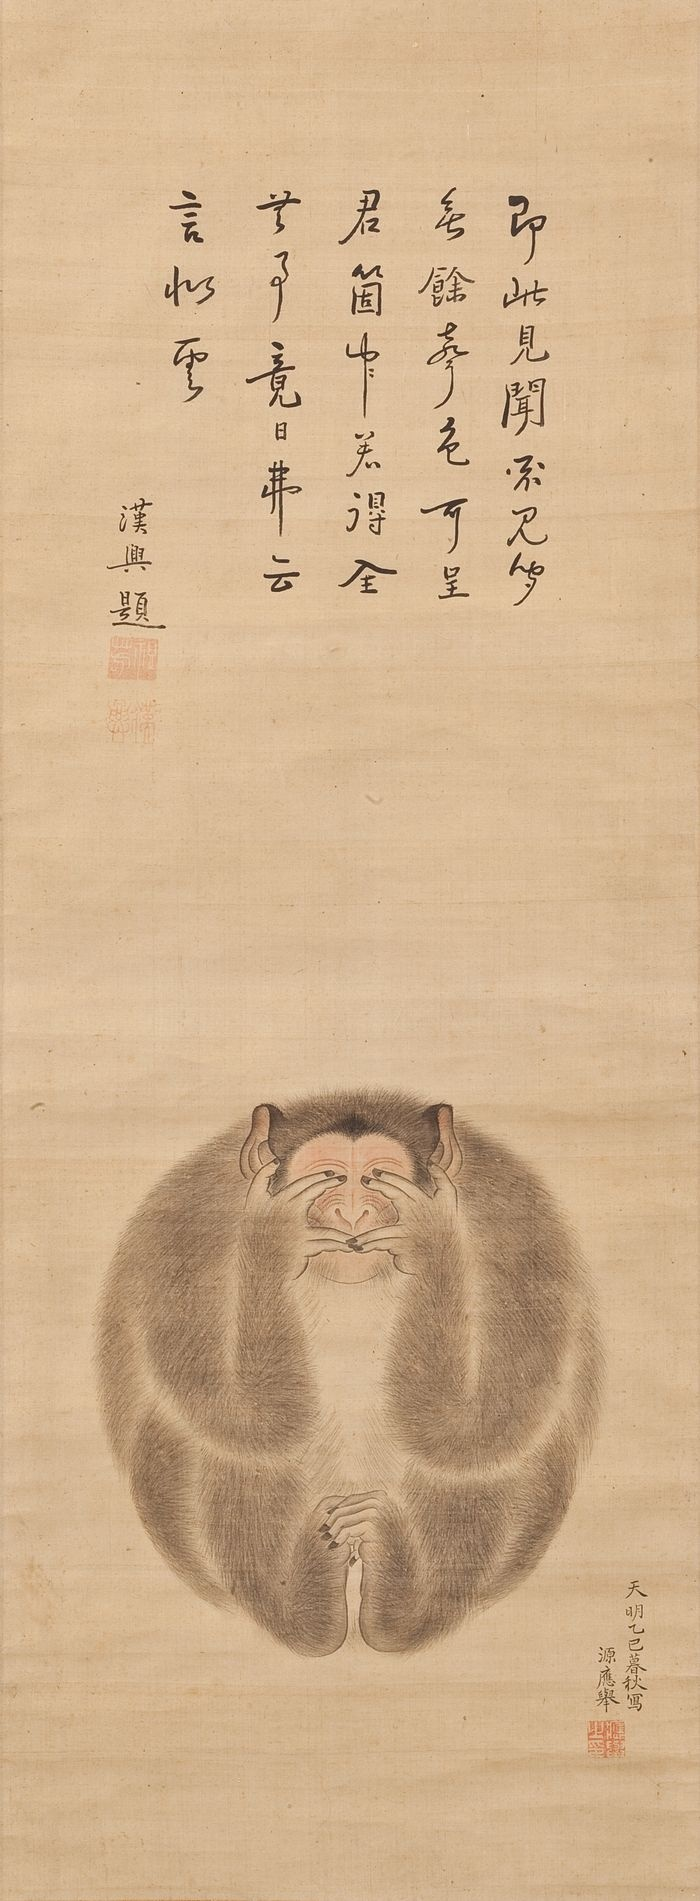 Three Monkeys, ink and color on silk by Maruyama Okyo. Calligraphy by Sozan Soho